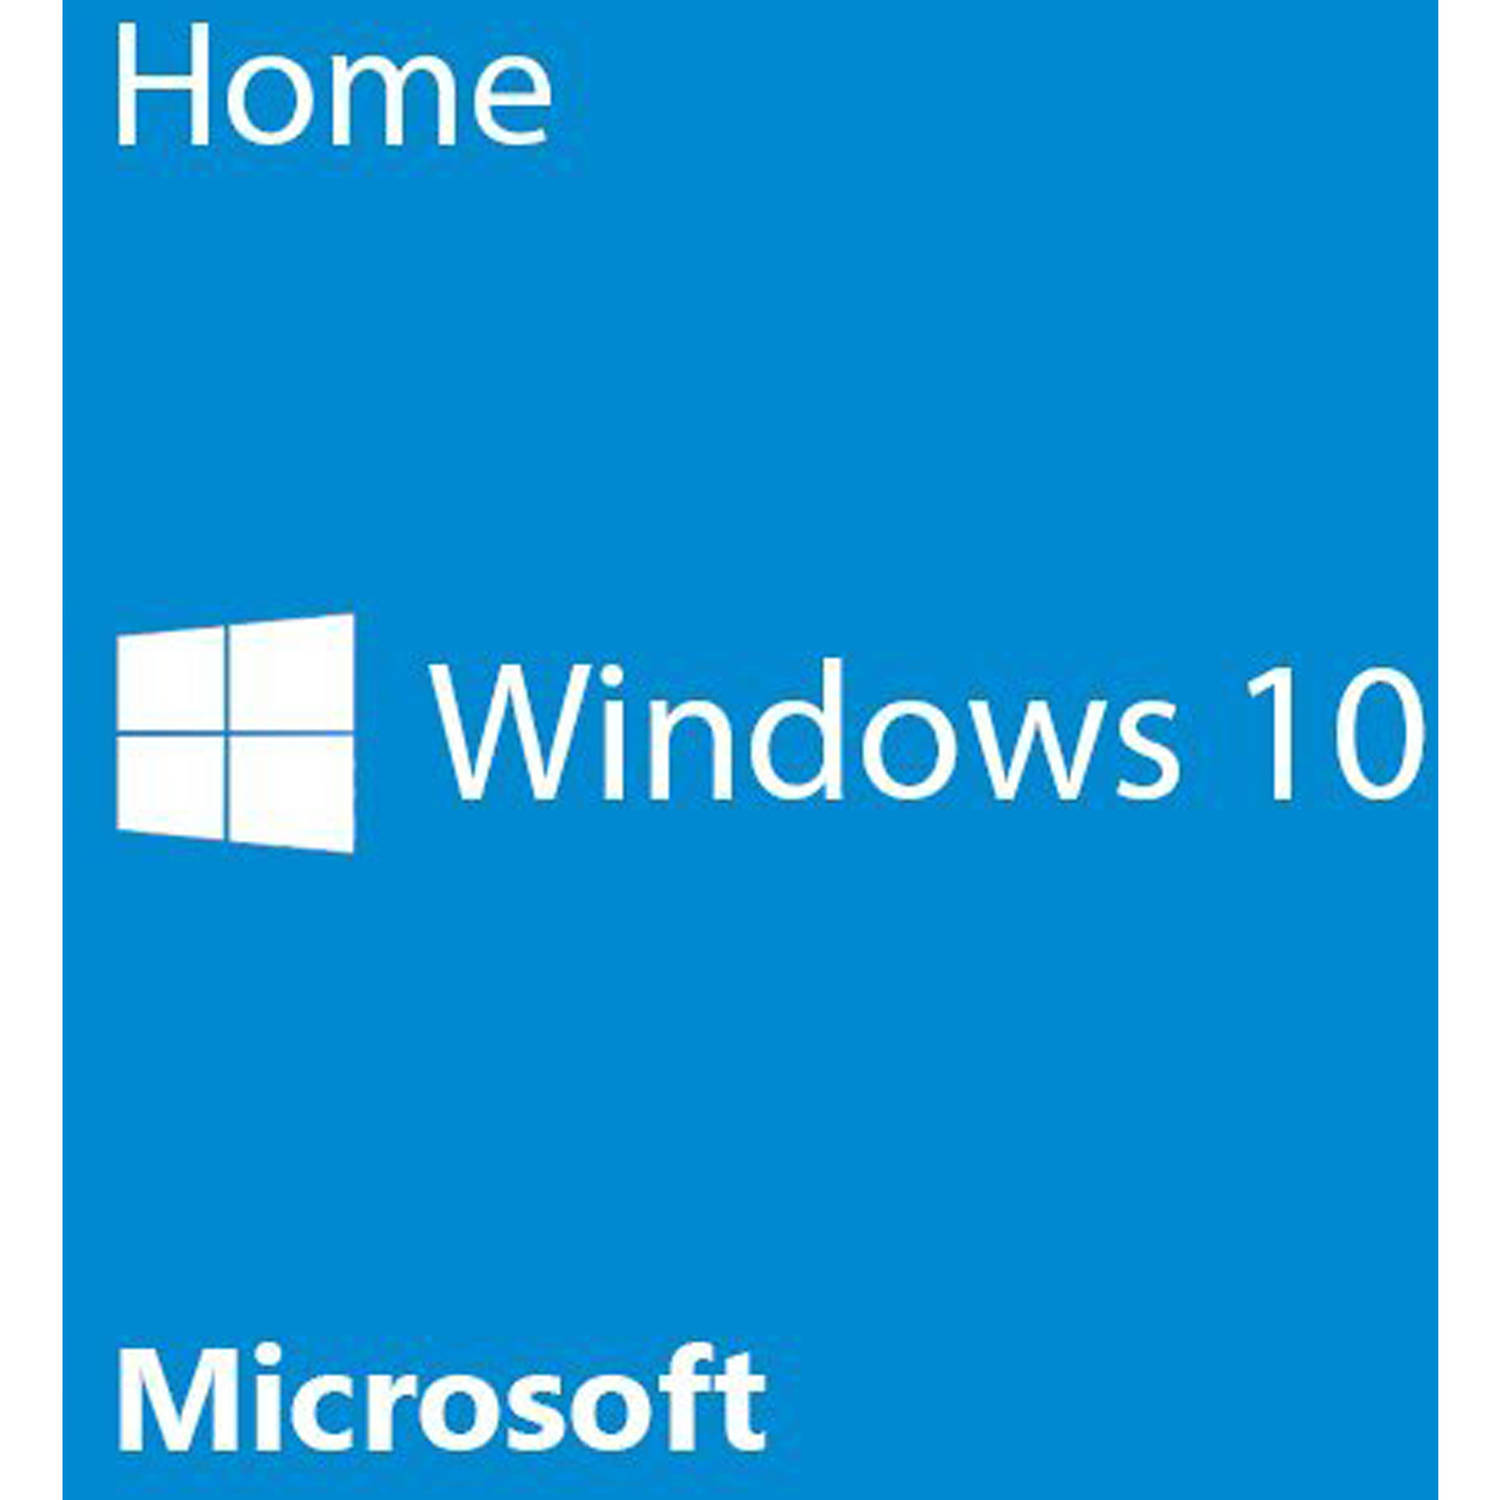 Microsoft Windows 10 Home 64-bit (OEM Software) by Microsoft